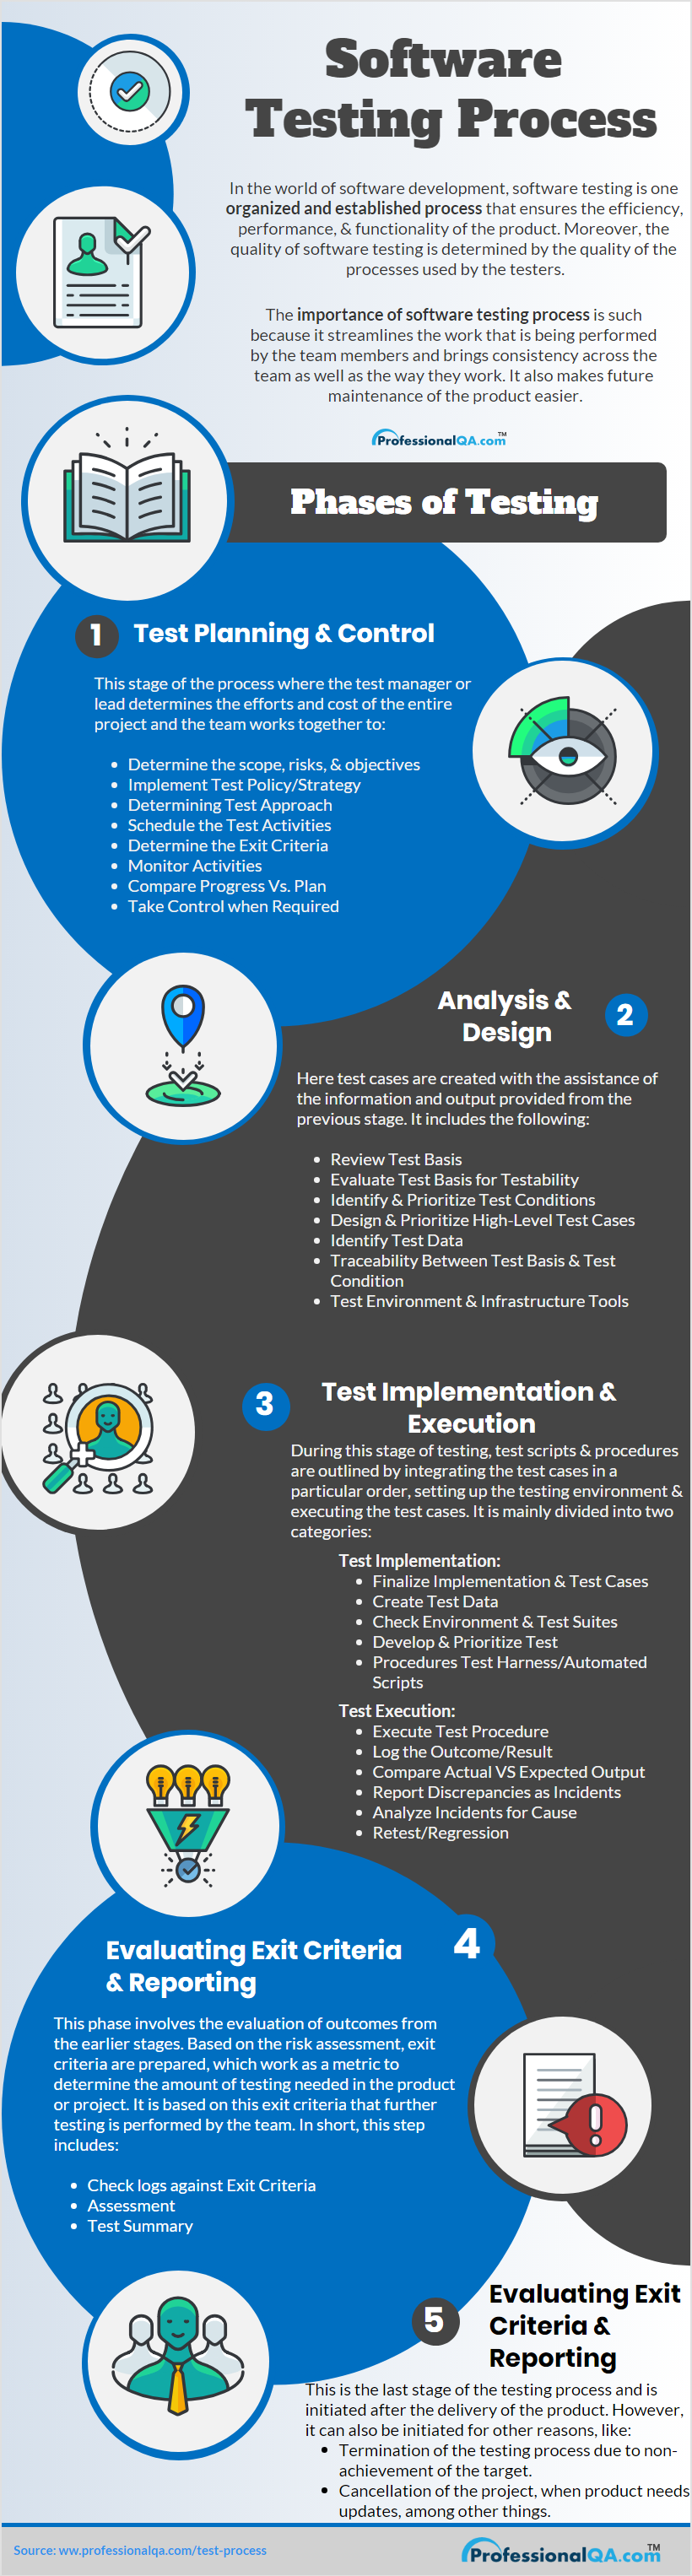 Fundamental of Test Process |Professionalqa com